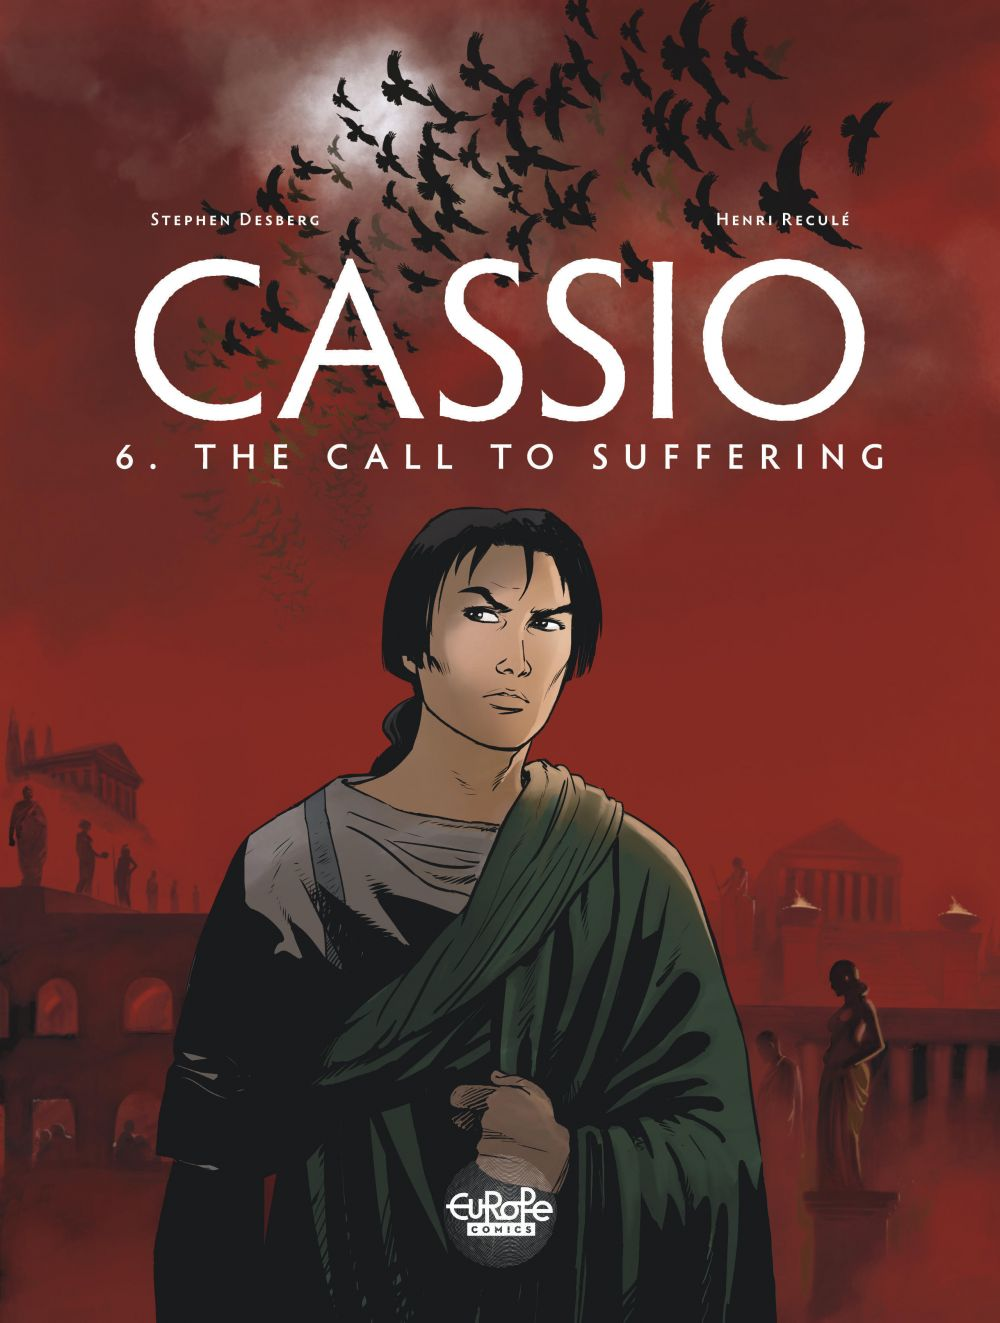 Cassio 6. The Call to Suffering